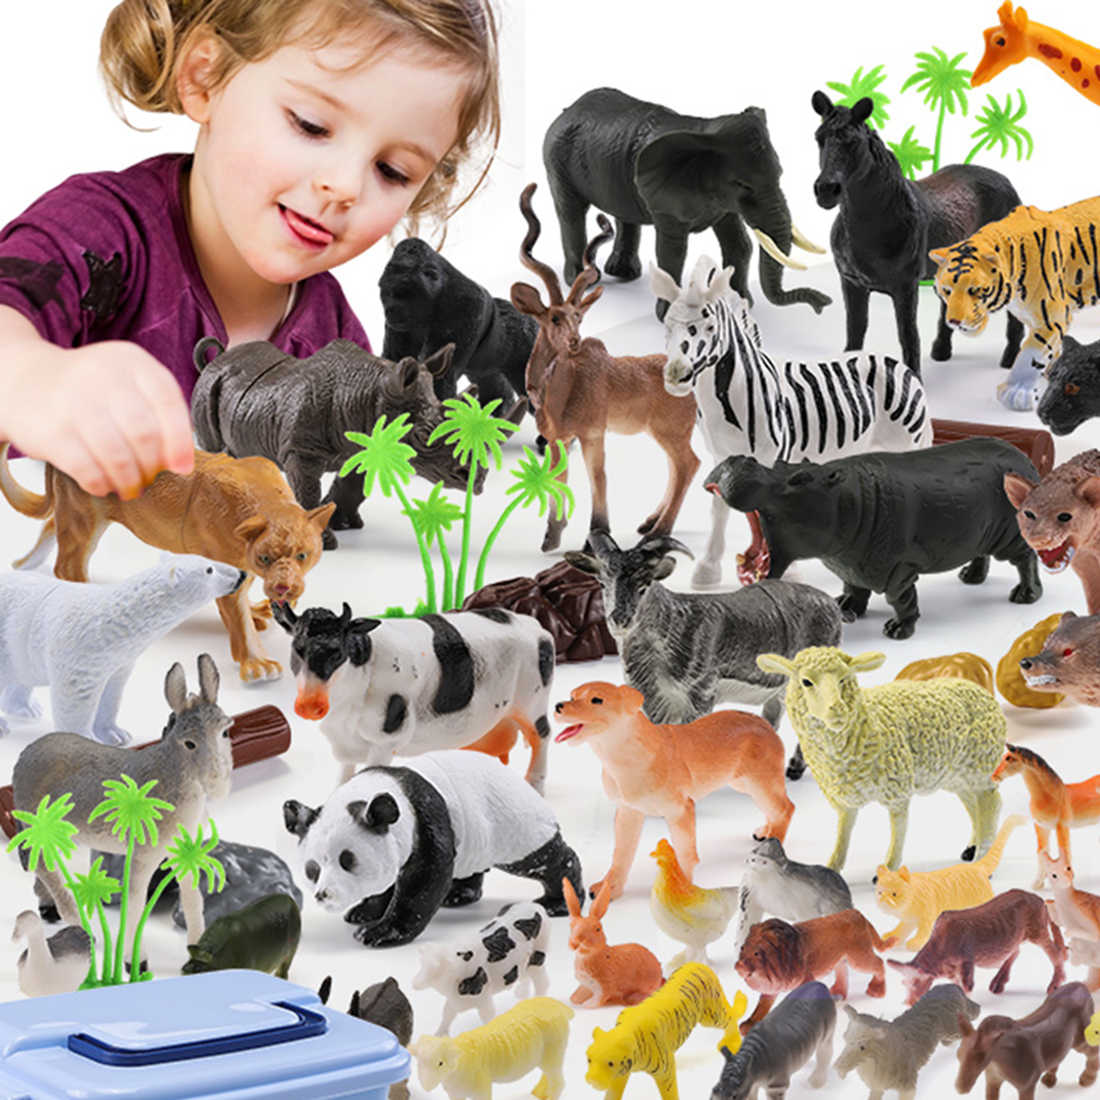 44pcs Genuine Selvagem Selva Zoo Farm Animal Série Jaguar Collectible Modelo Toy Kids Early Learning Brinquedos Cognitivos Presentes- aleatória